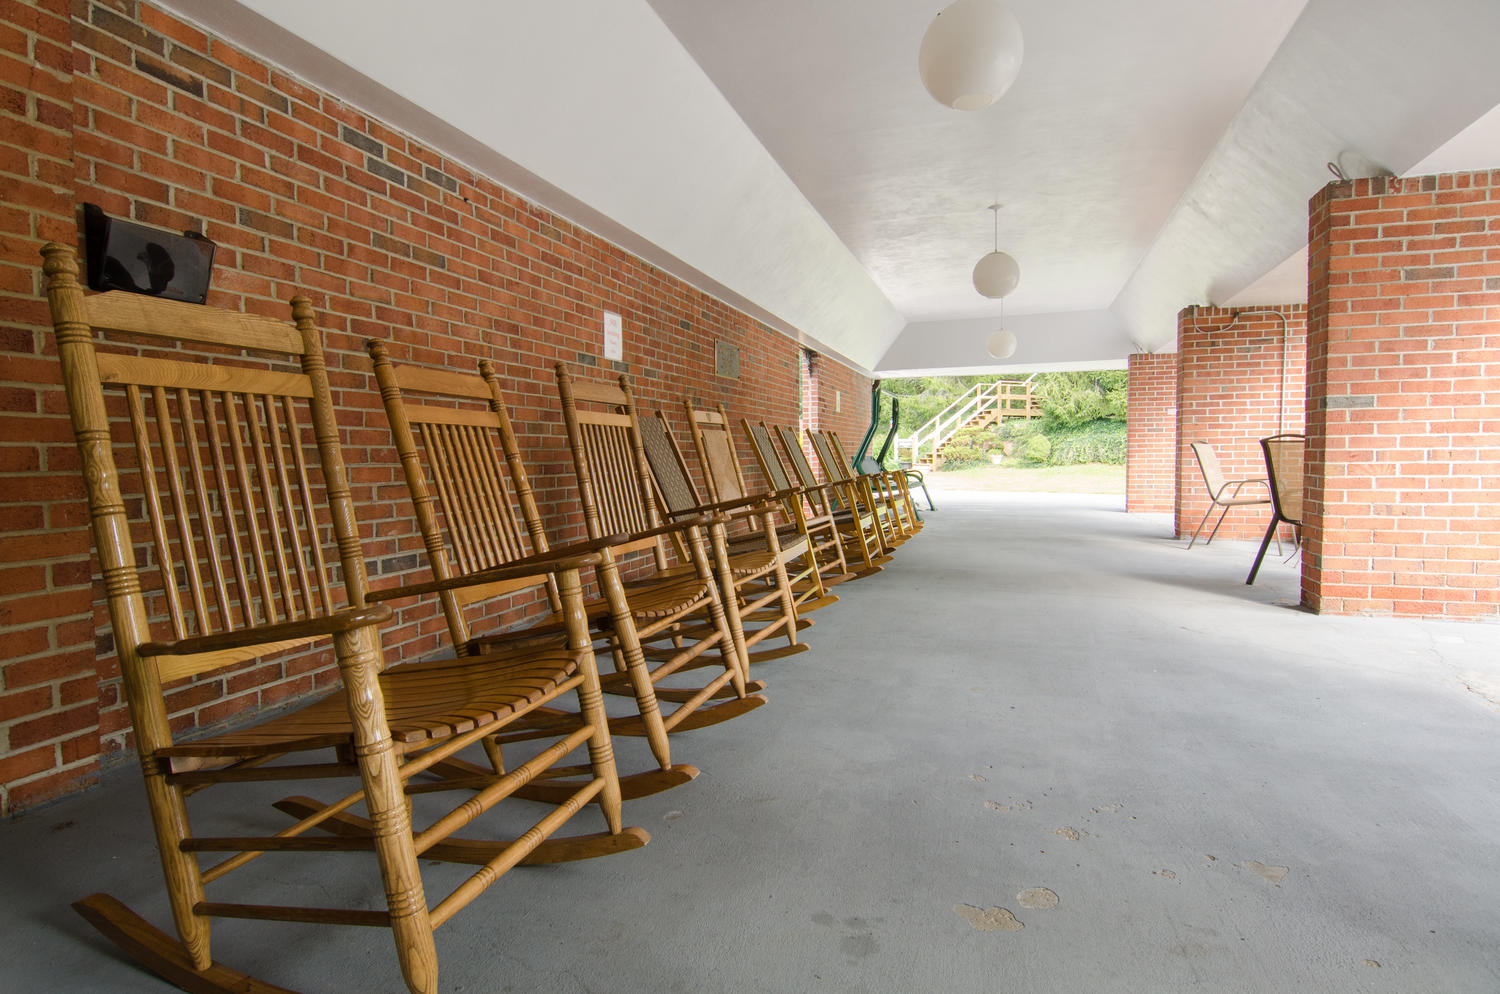 Rocking chairs for patient use at Stonerise Princeton